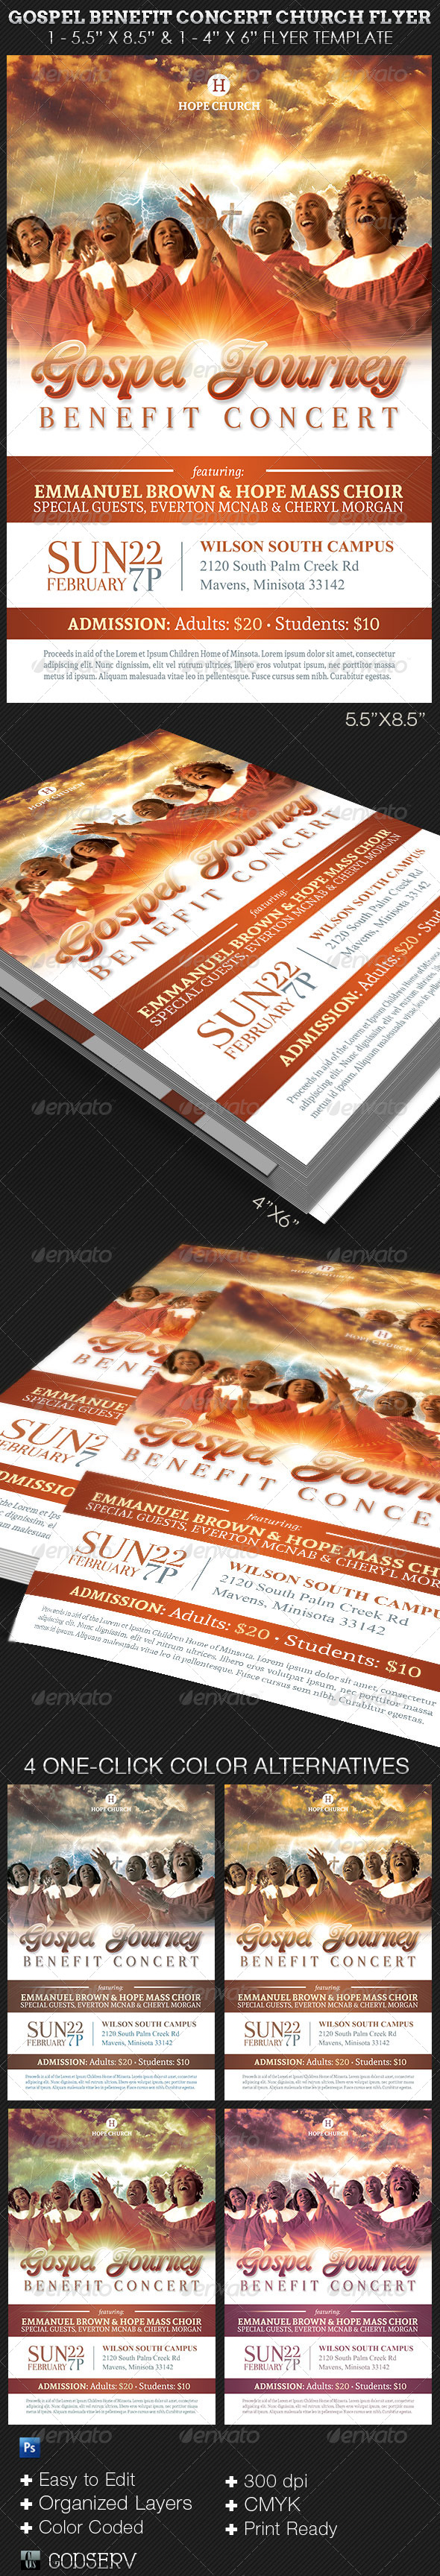 Gospel Benefit Concert Church Flyer Template  - Church Flyers